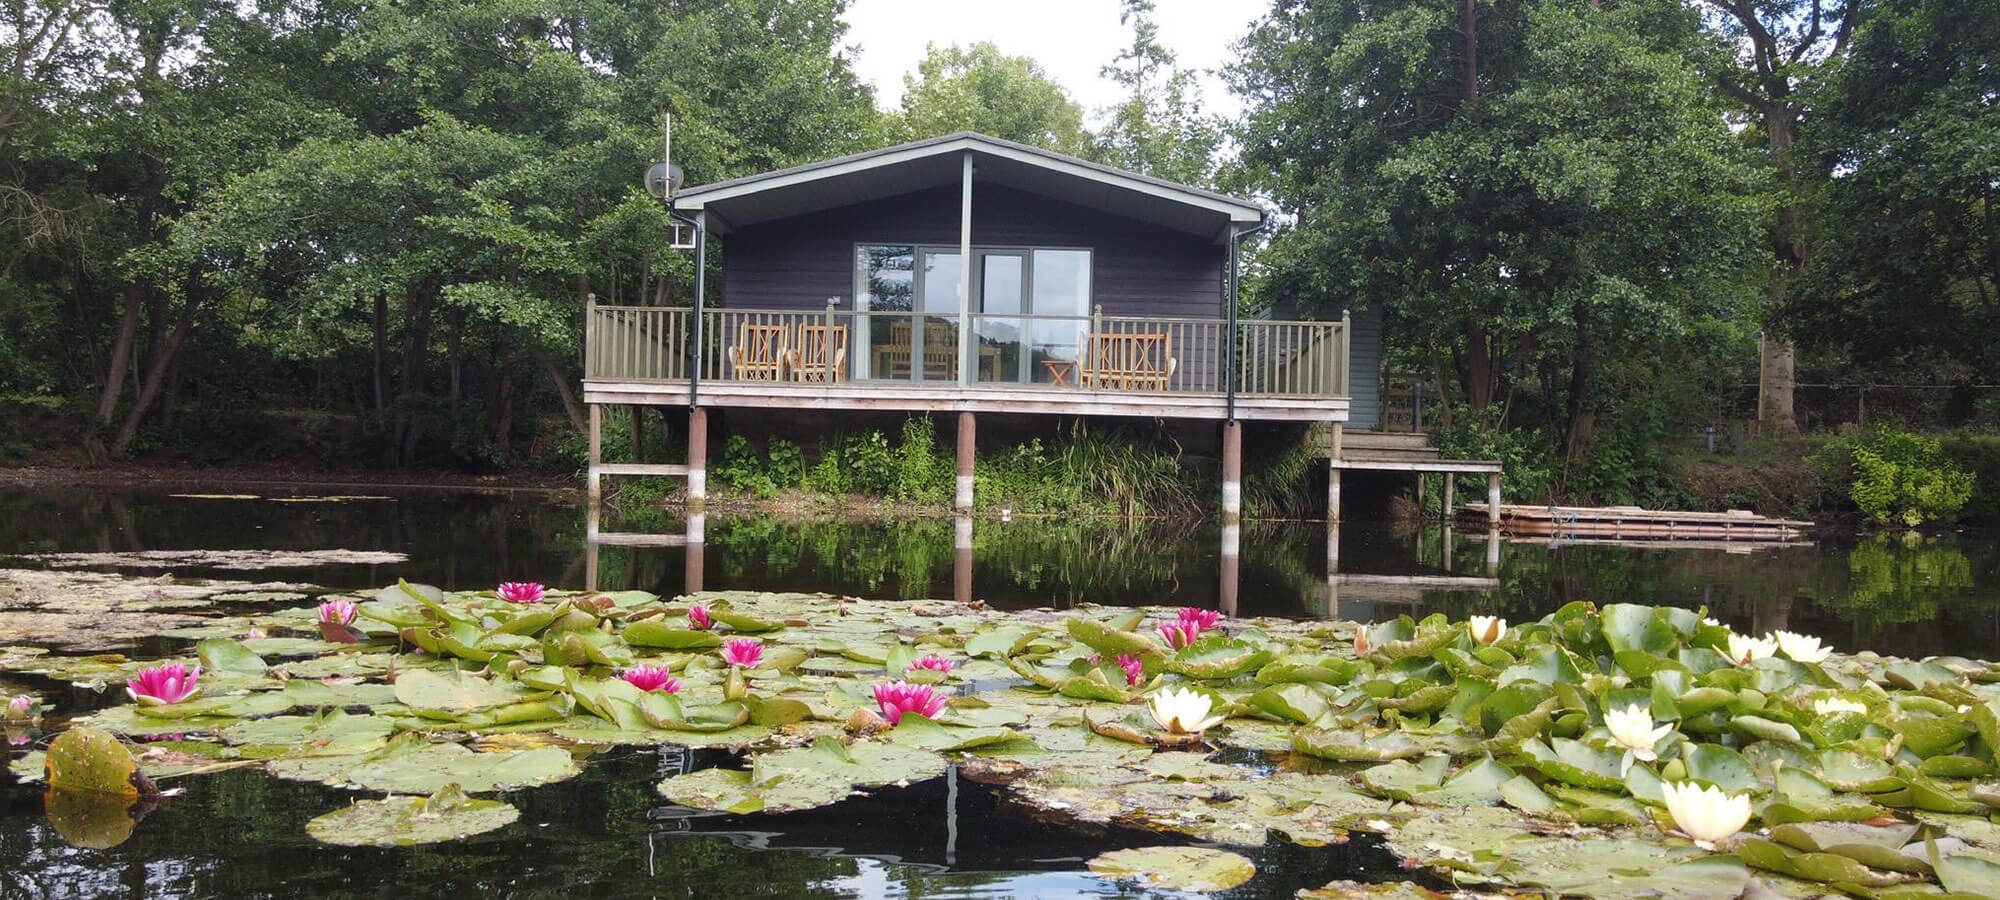 Norfolk Lodge Holidays - Luxury Log Cabins based in Lenwade Norfolk 15 mins drive from Norwich